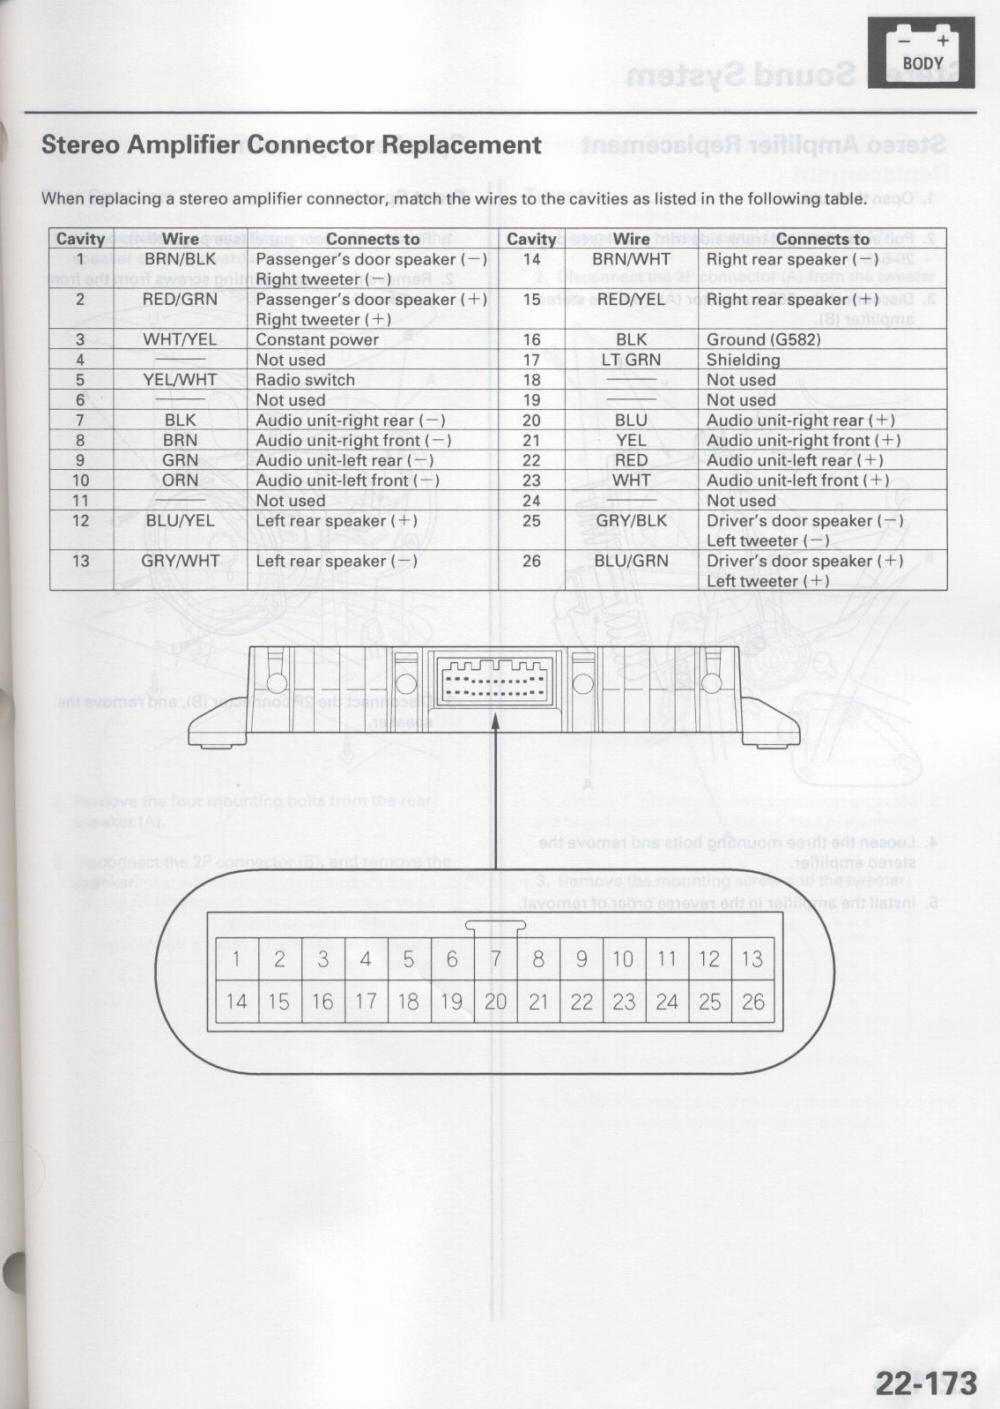 Acura Mdx 2002 Stereo Wiring Diagram Hp Photosmart Printer